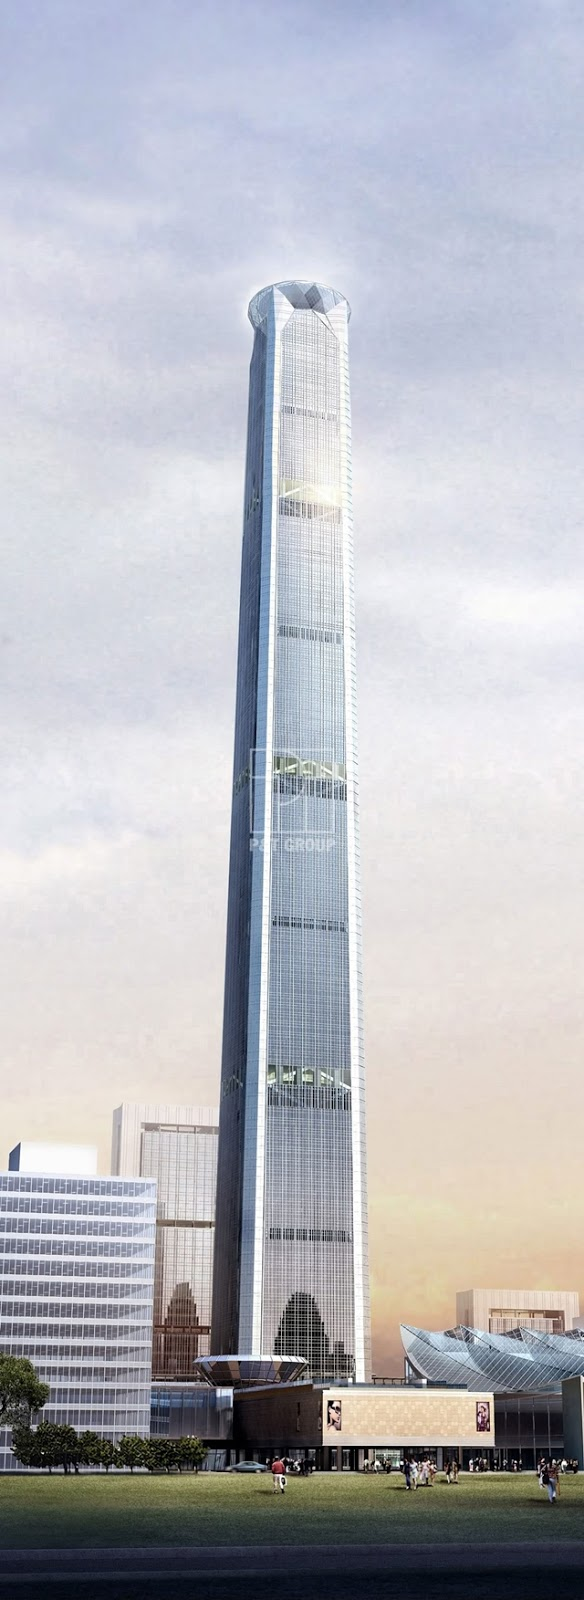 Rendering of the Goldin Finance 117 Tower